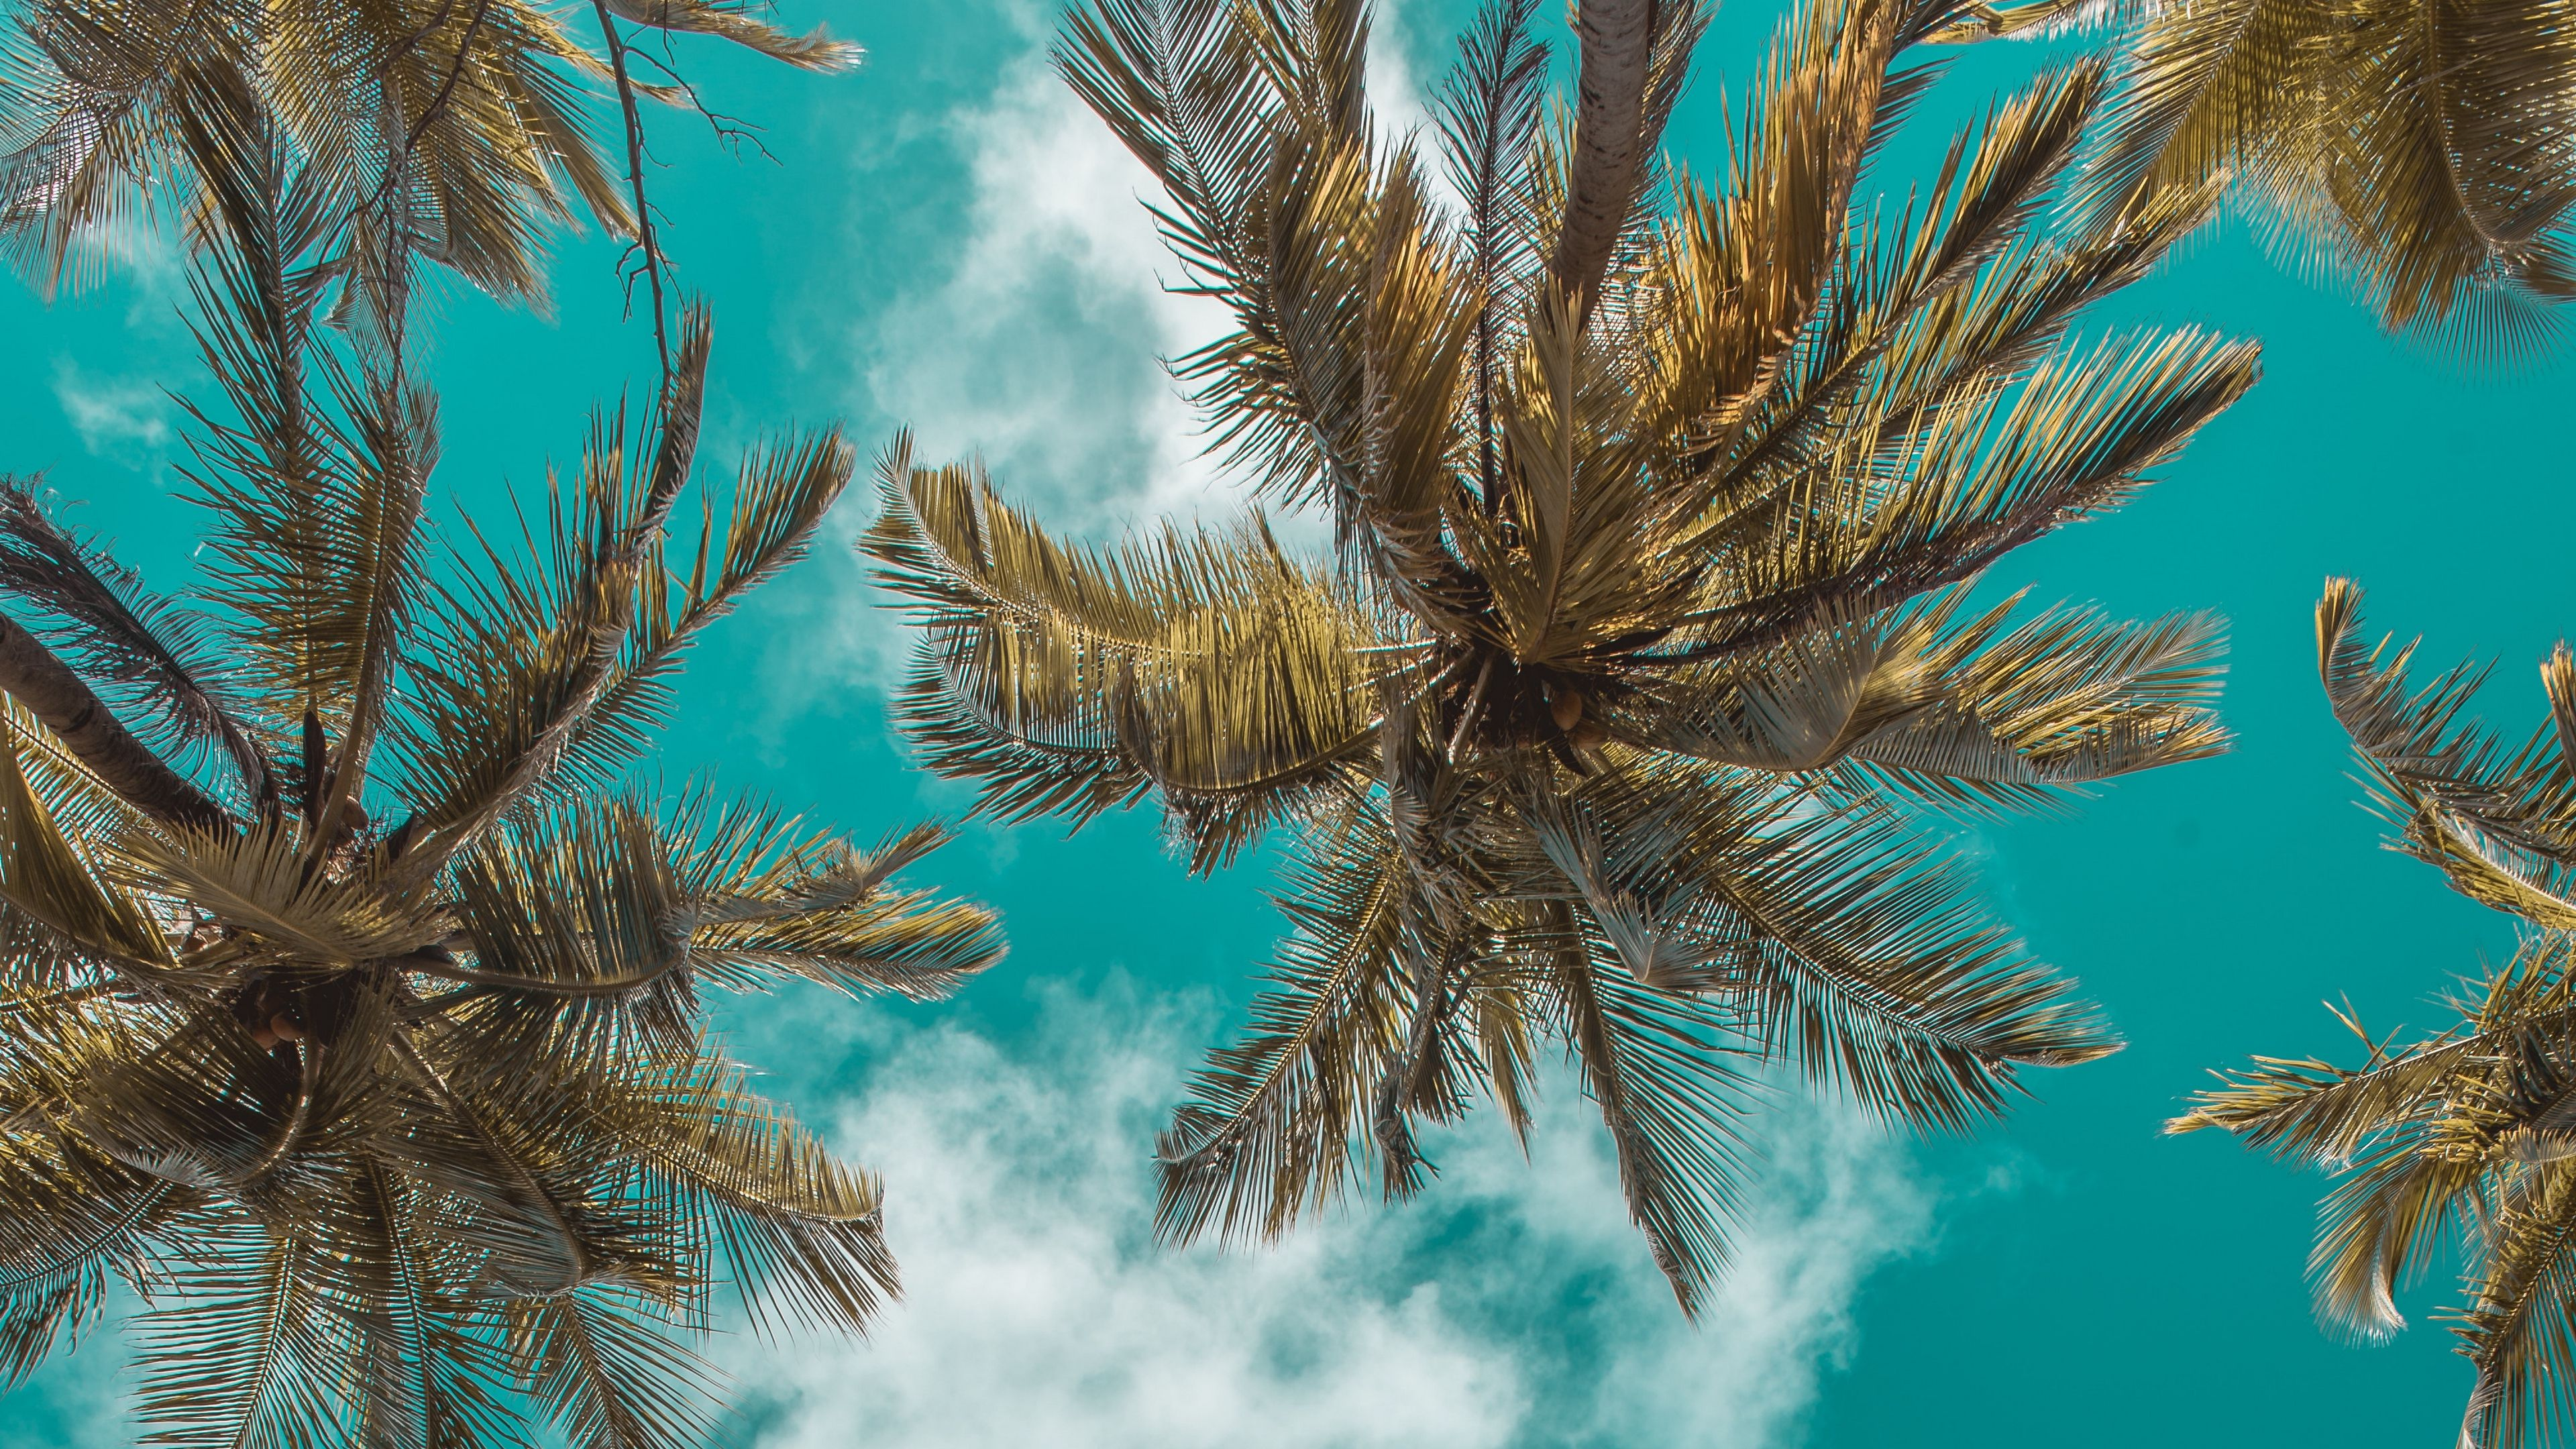 Palm Trees Bottom View Clouds Sky Branches Tropics Leaves 4k Palm Trees Clouds Bottom View Clouds Sky Palm Trees